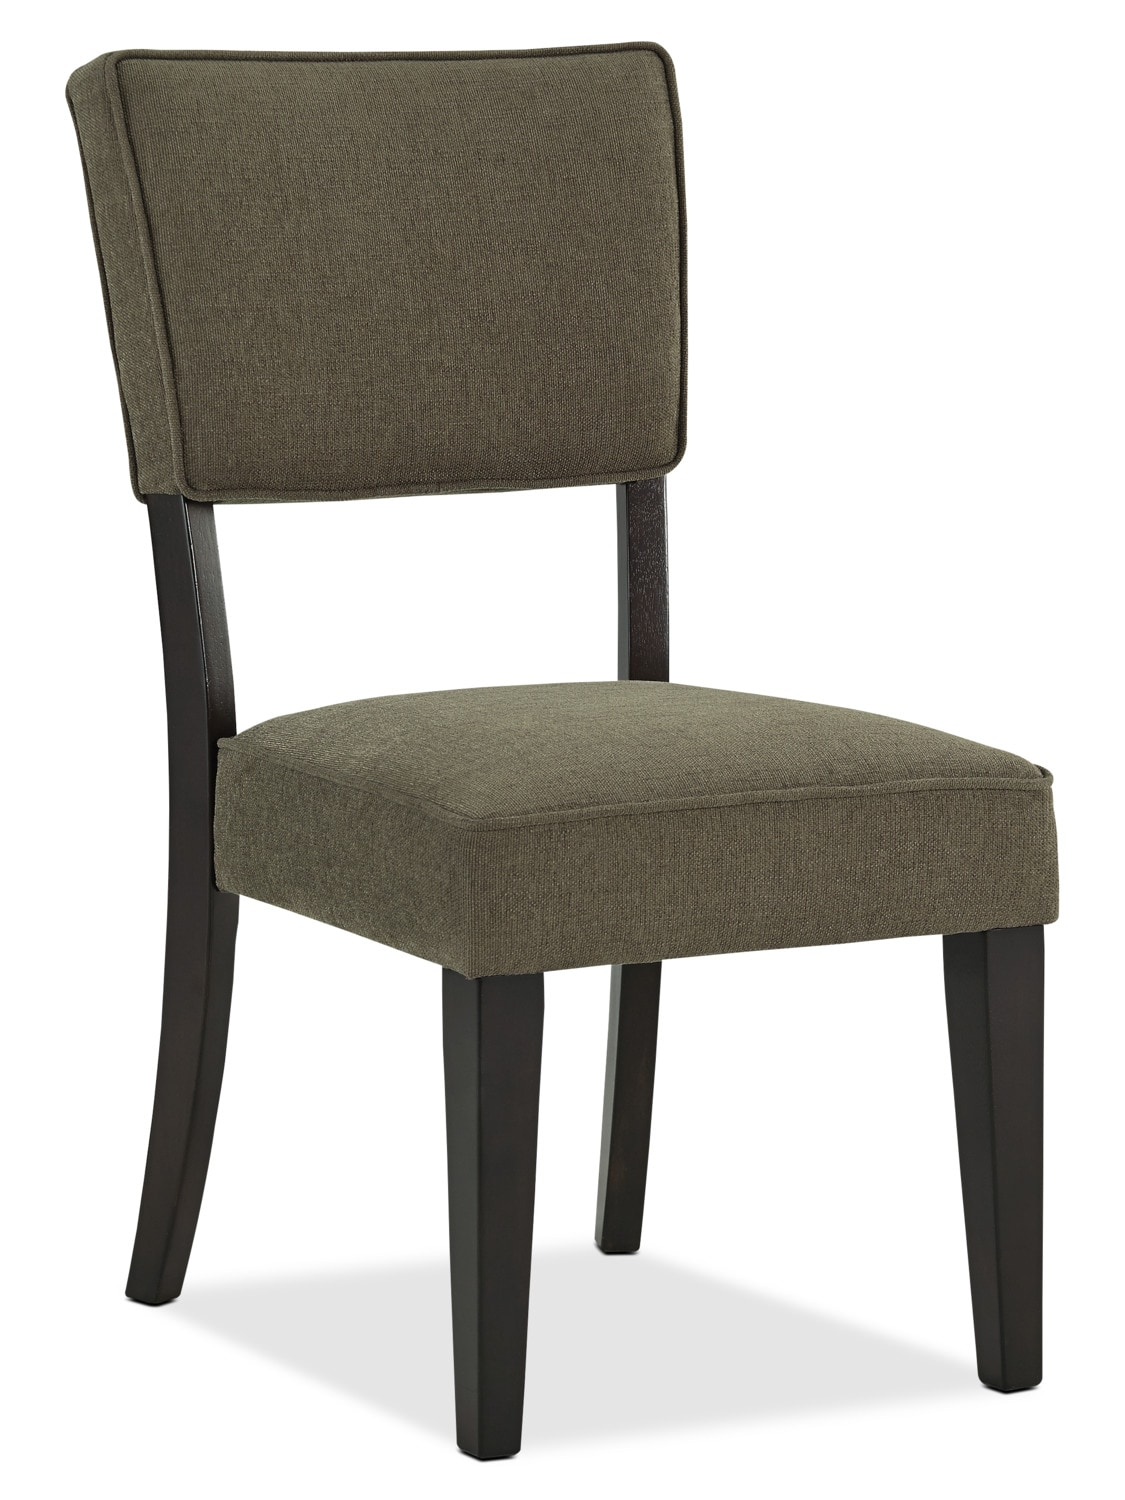 Gavelston Dining Chair – Green